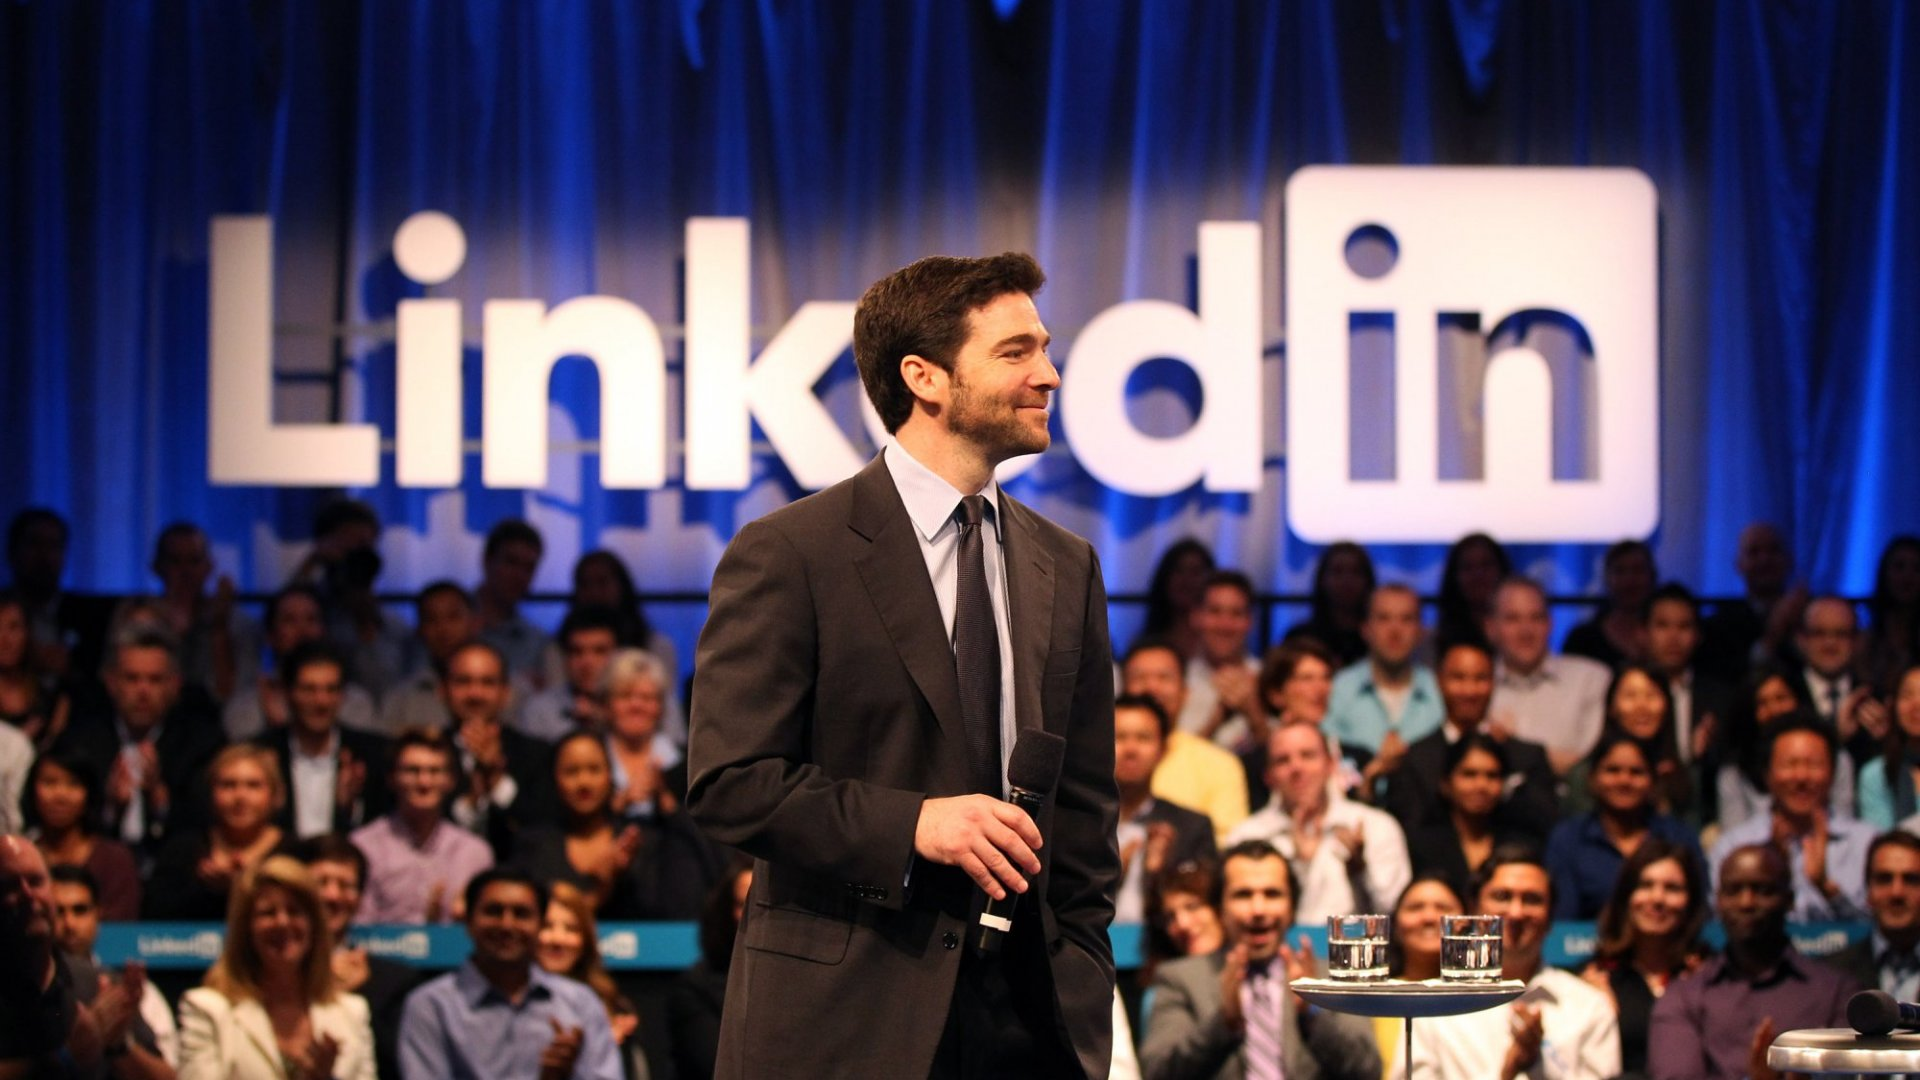 LinkedIn CEO Jeff Weiner's network is continuing to make news after being acquired by Microsoft for $26.2 billion.